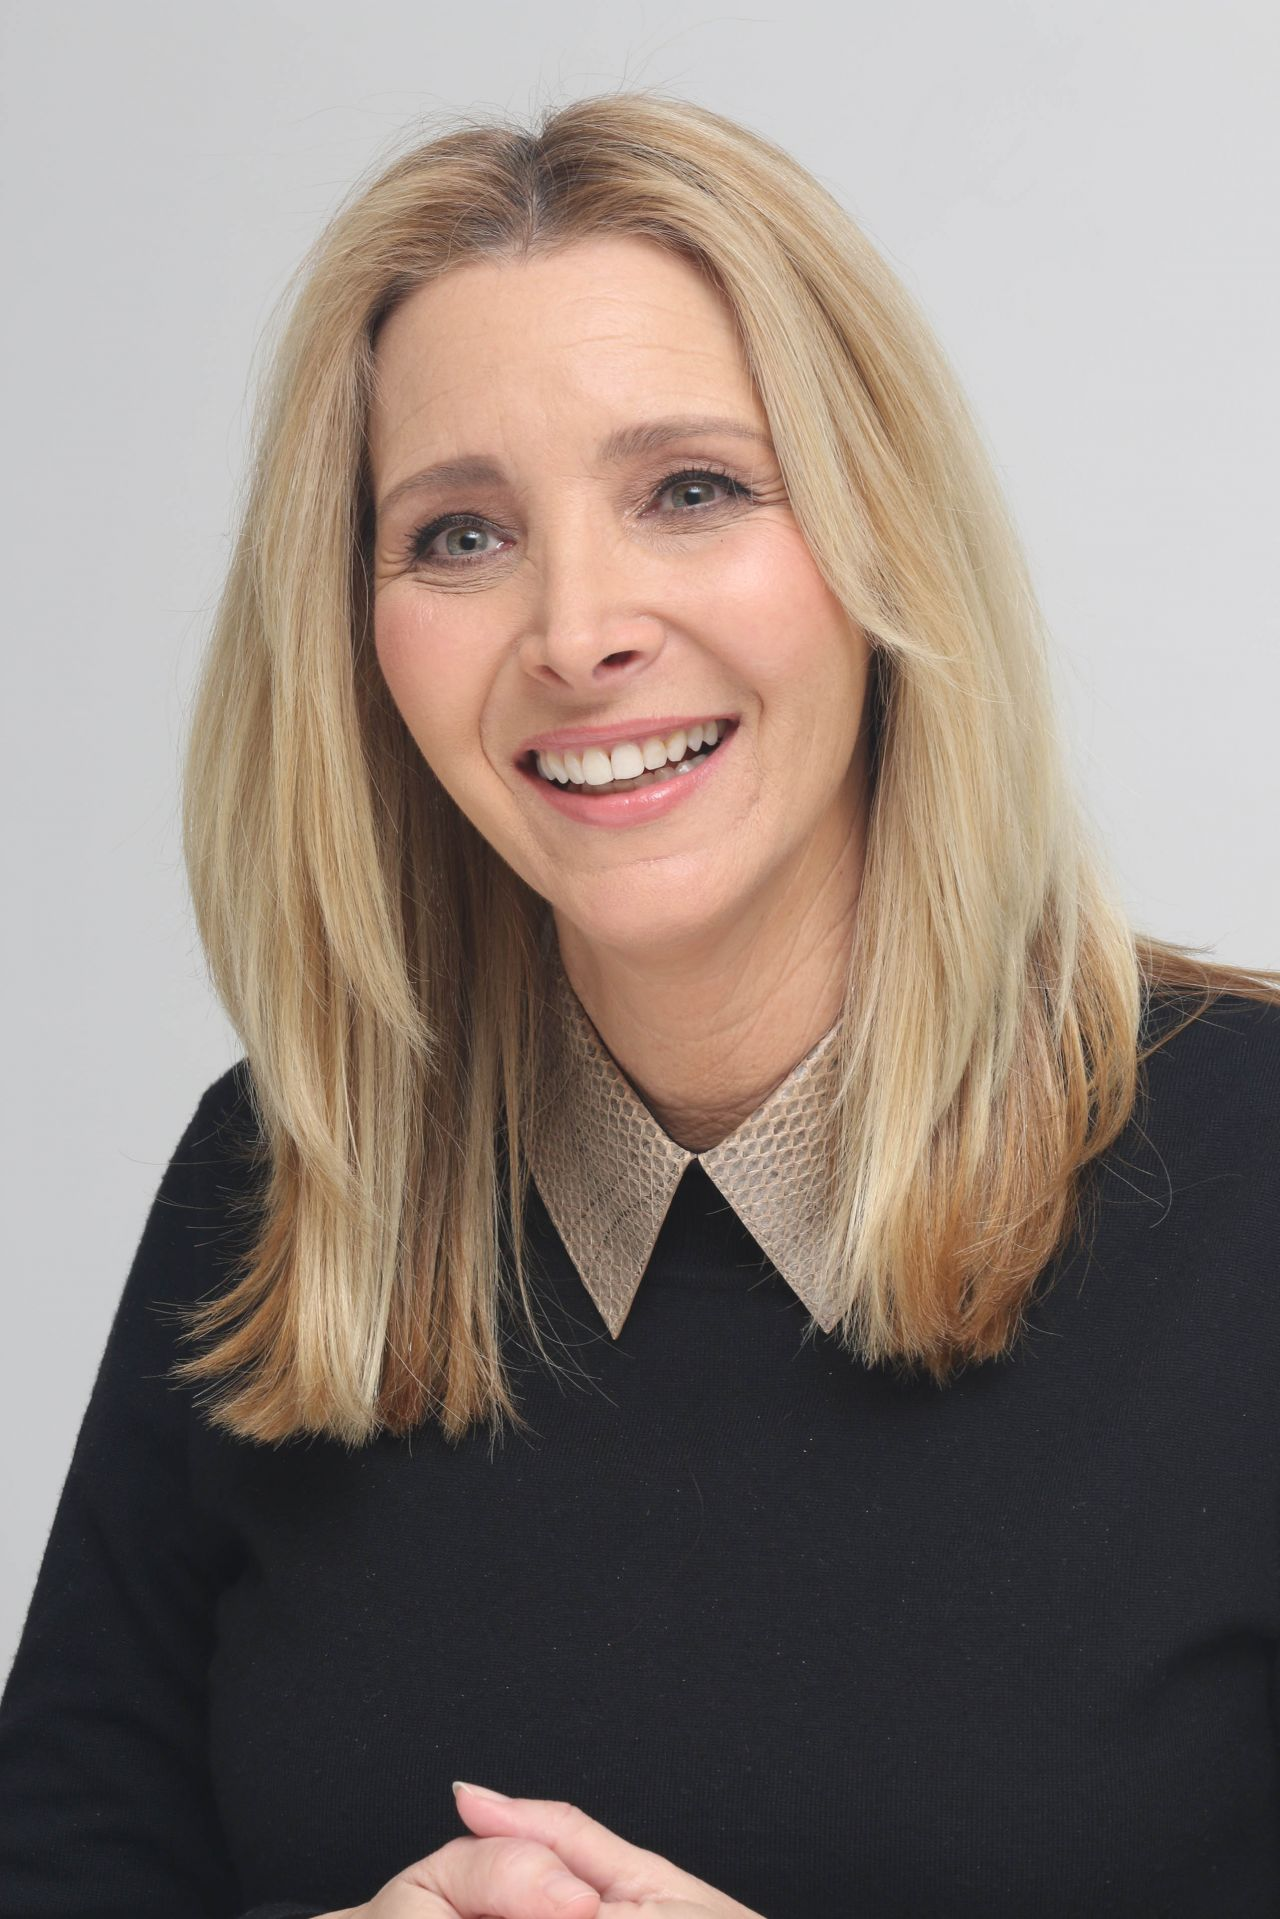 Lisa Kudrow The Boss Baby Press Conference Portraits